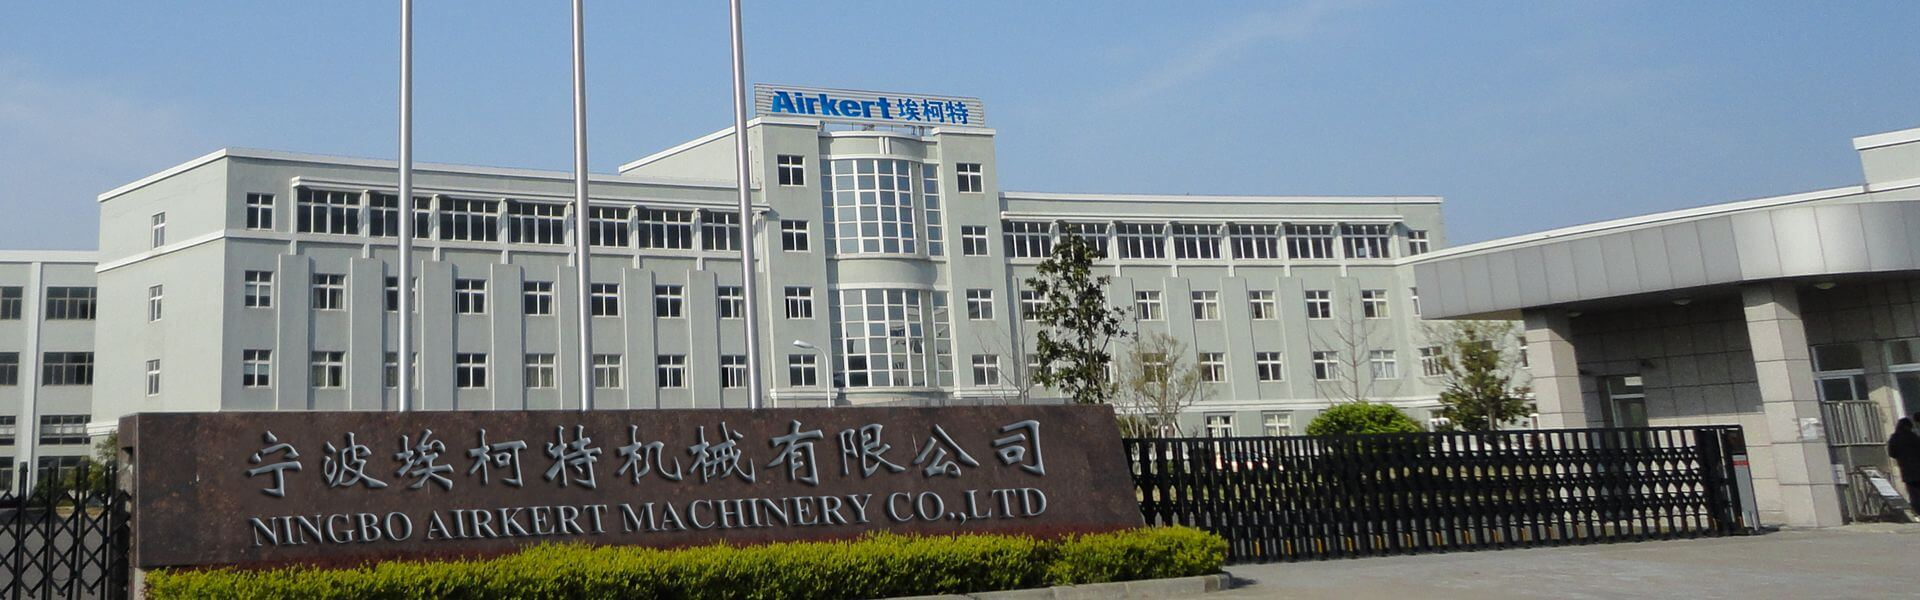 ningbo airkert machinery